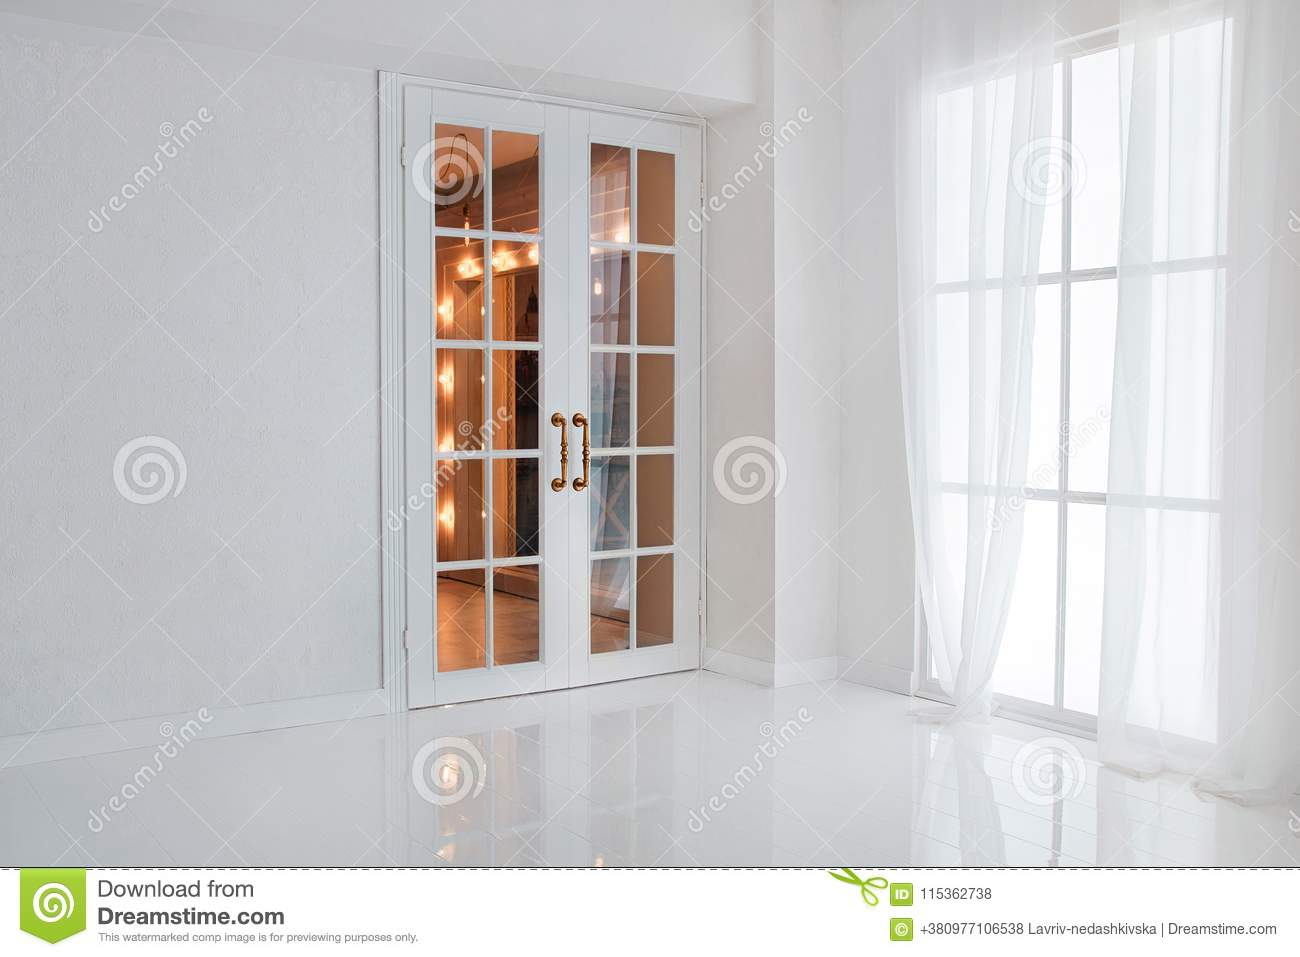 Empty white room with big window and glass french door with bright orange lights